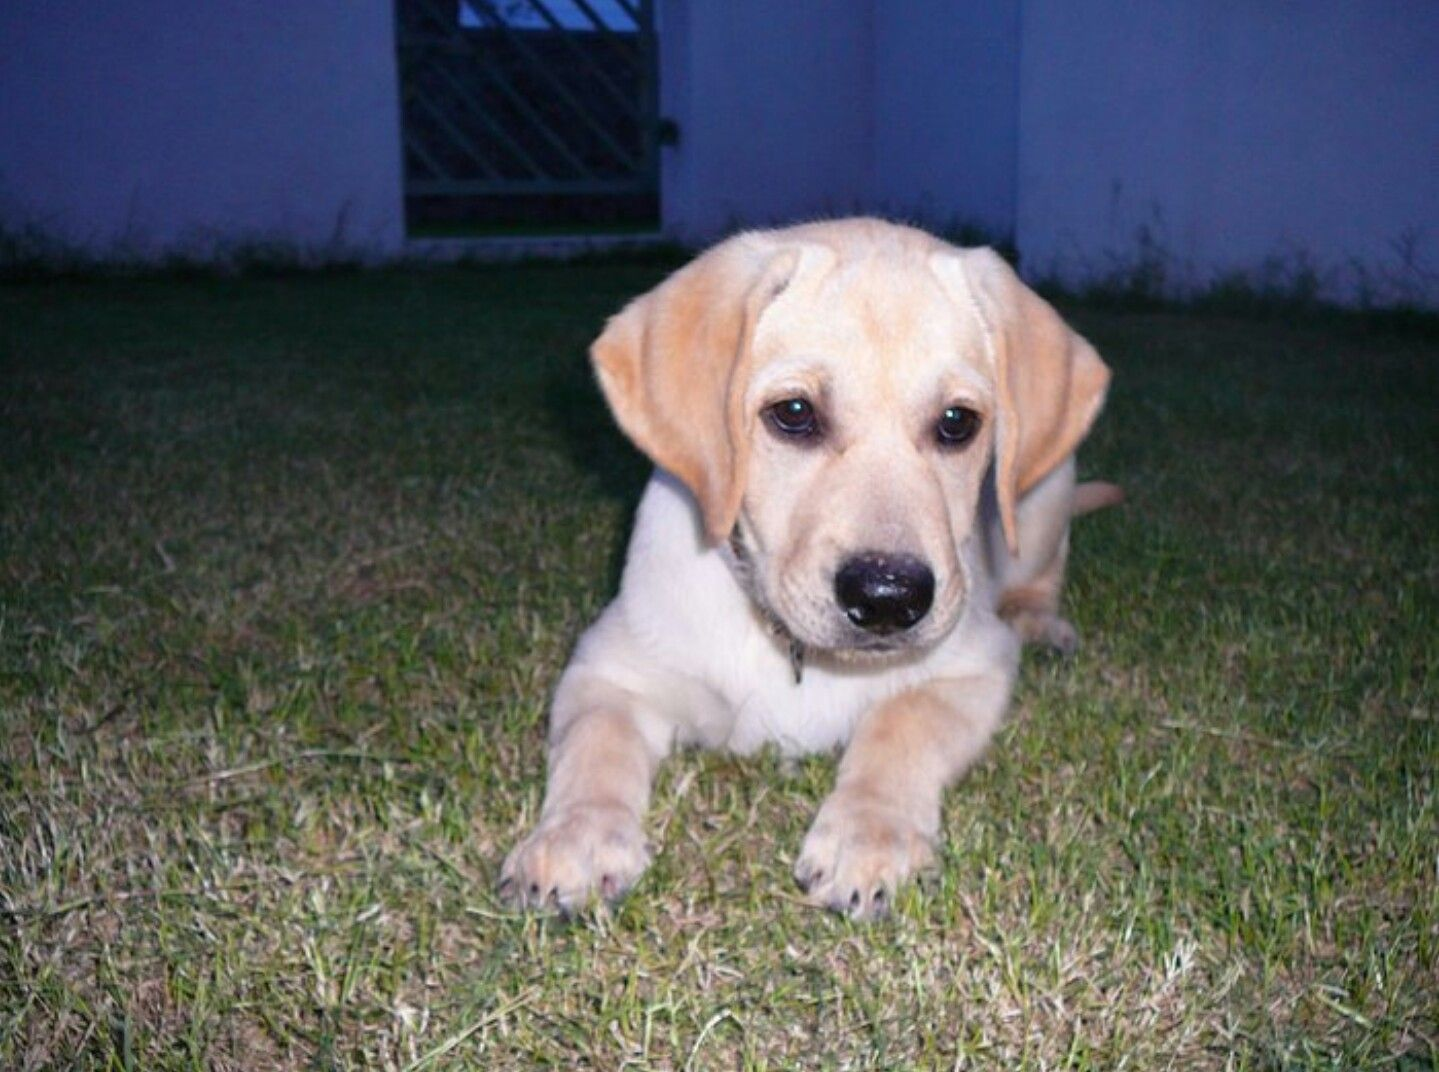 Bady at our backyard, when he was a puppy. #backat009 @katrinihln